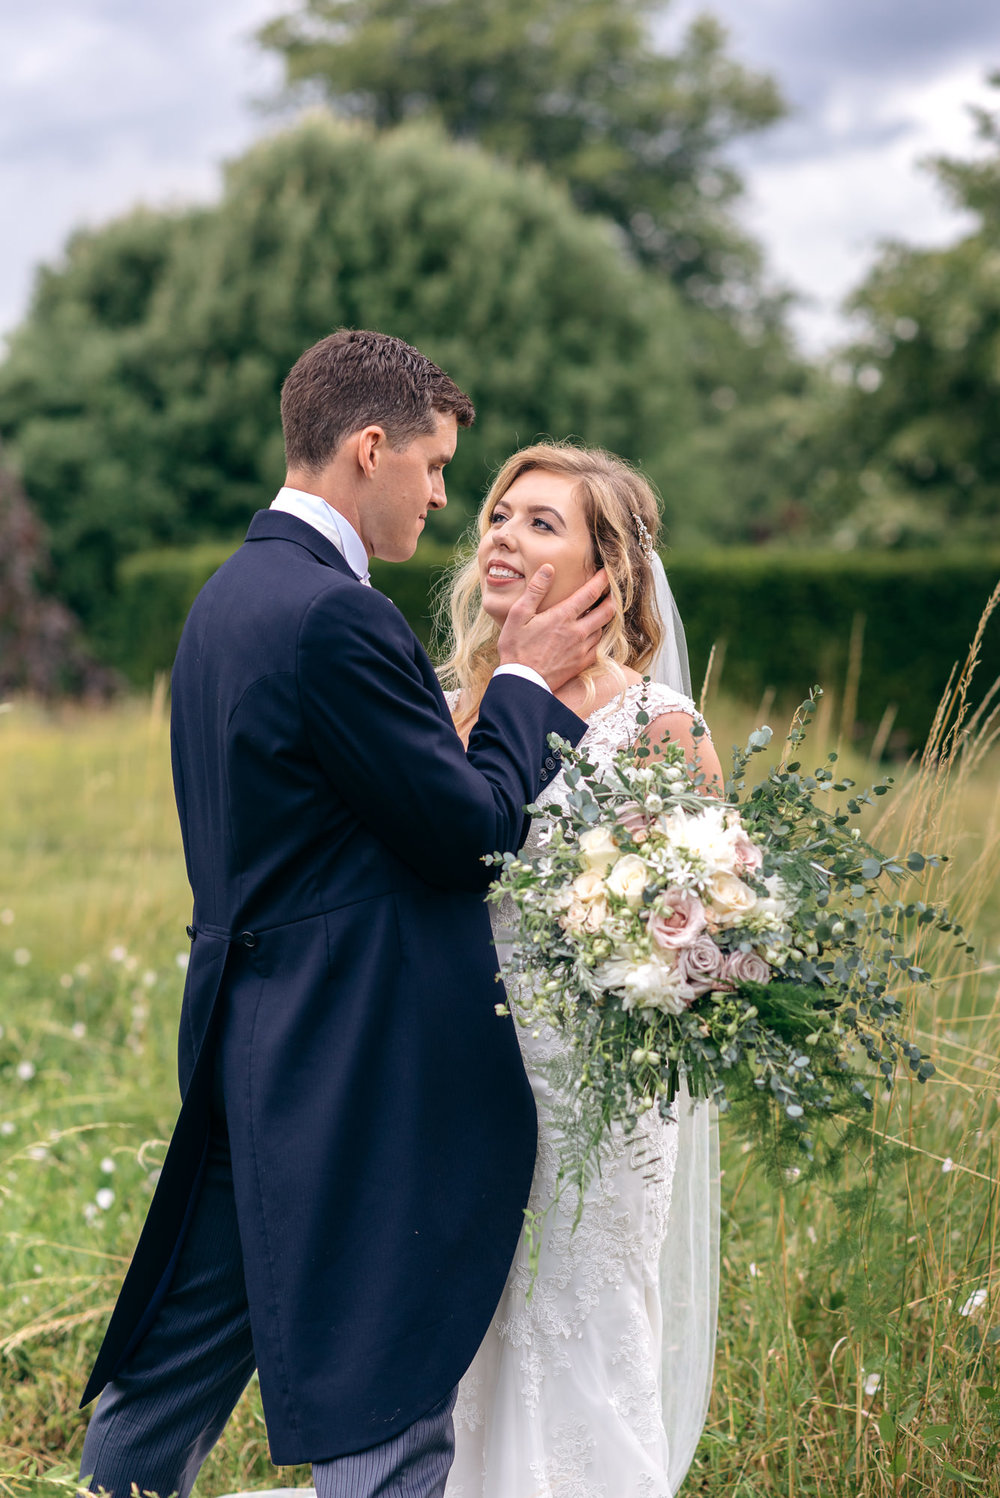 Narborough Hall gardens wedding photographer